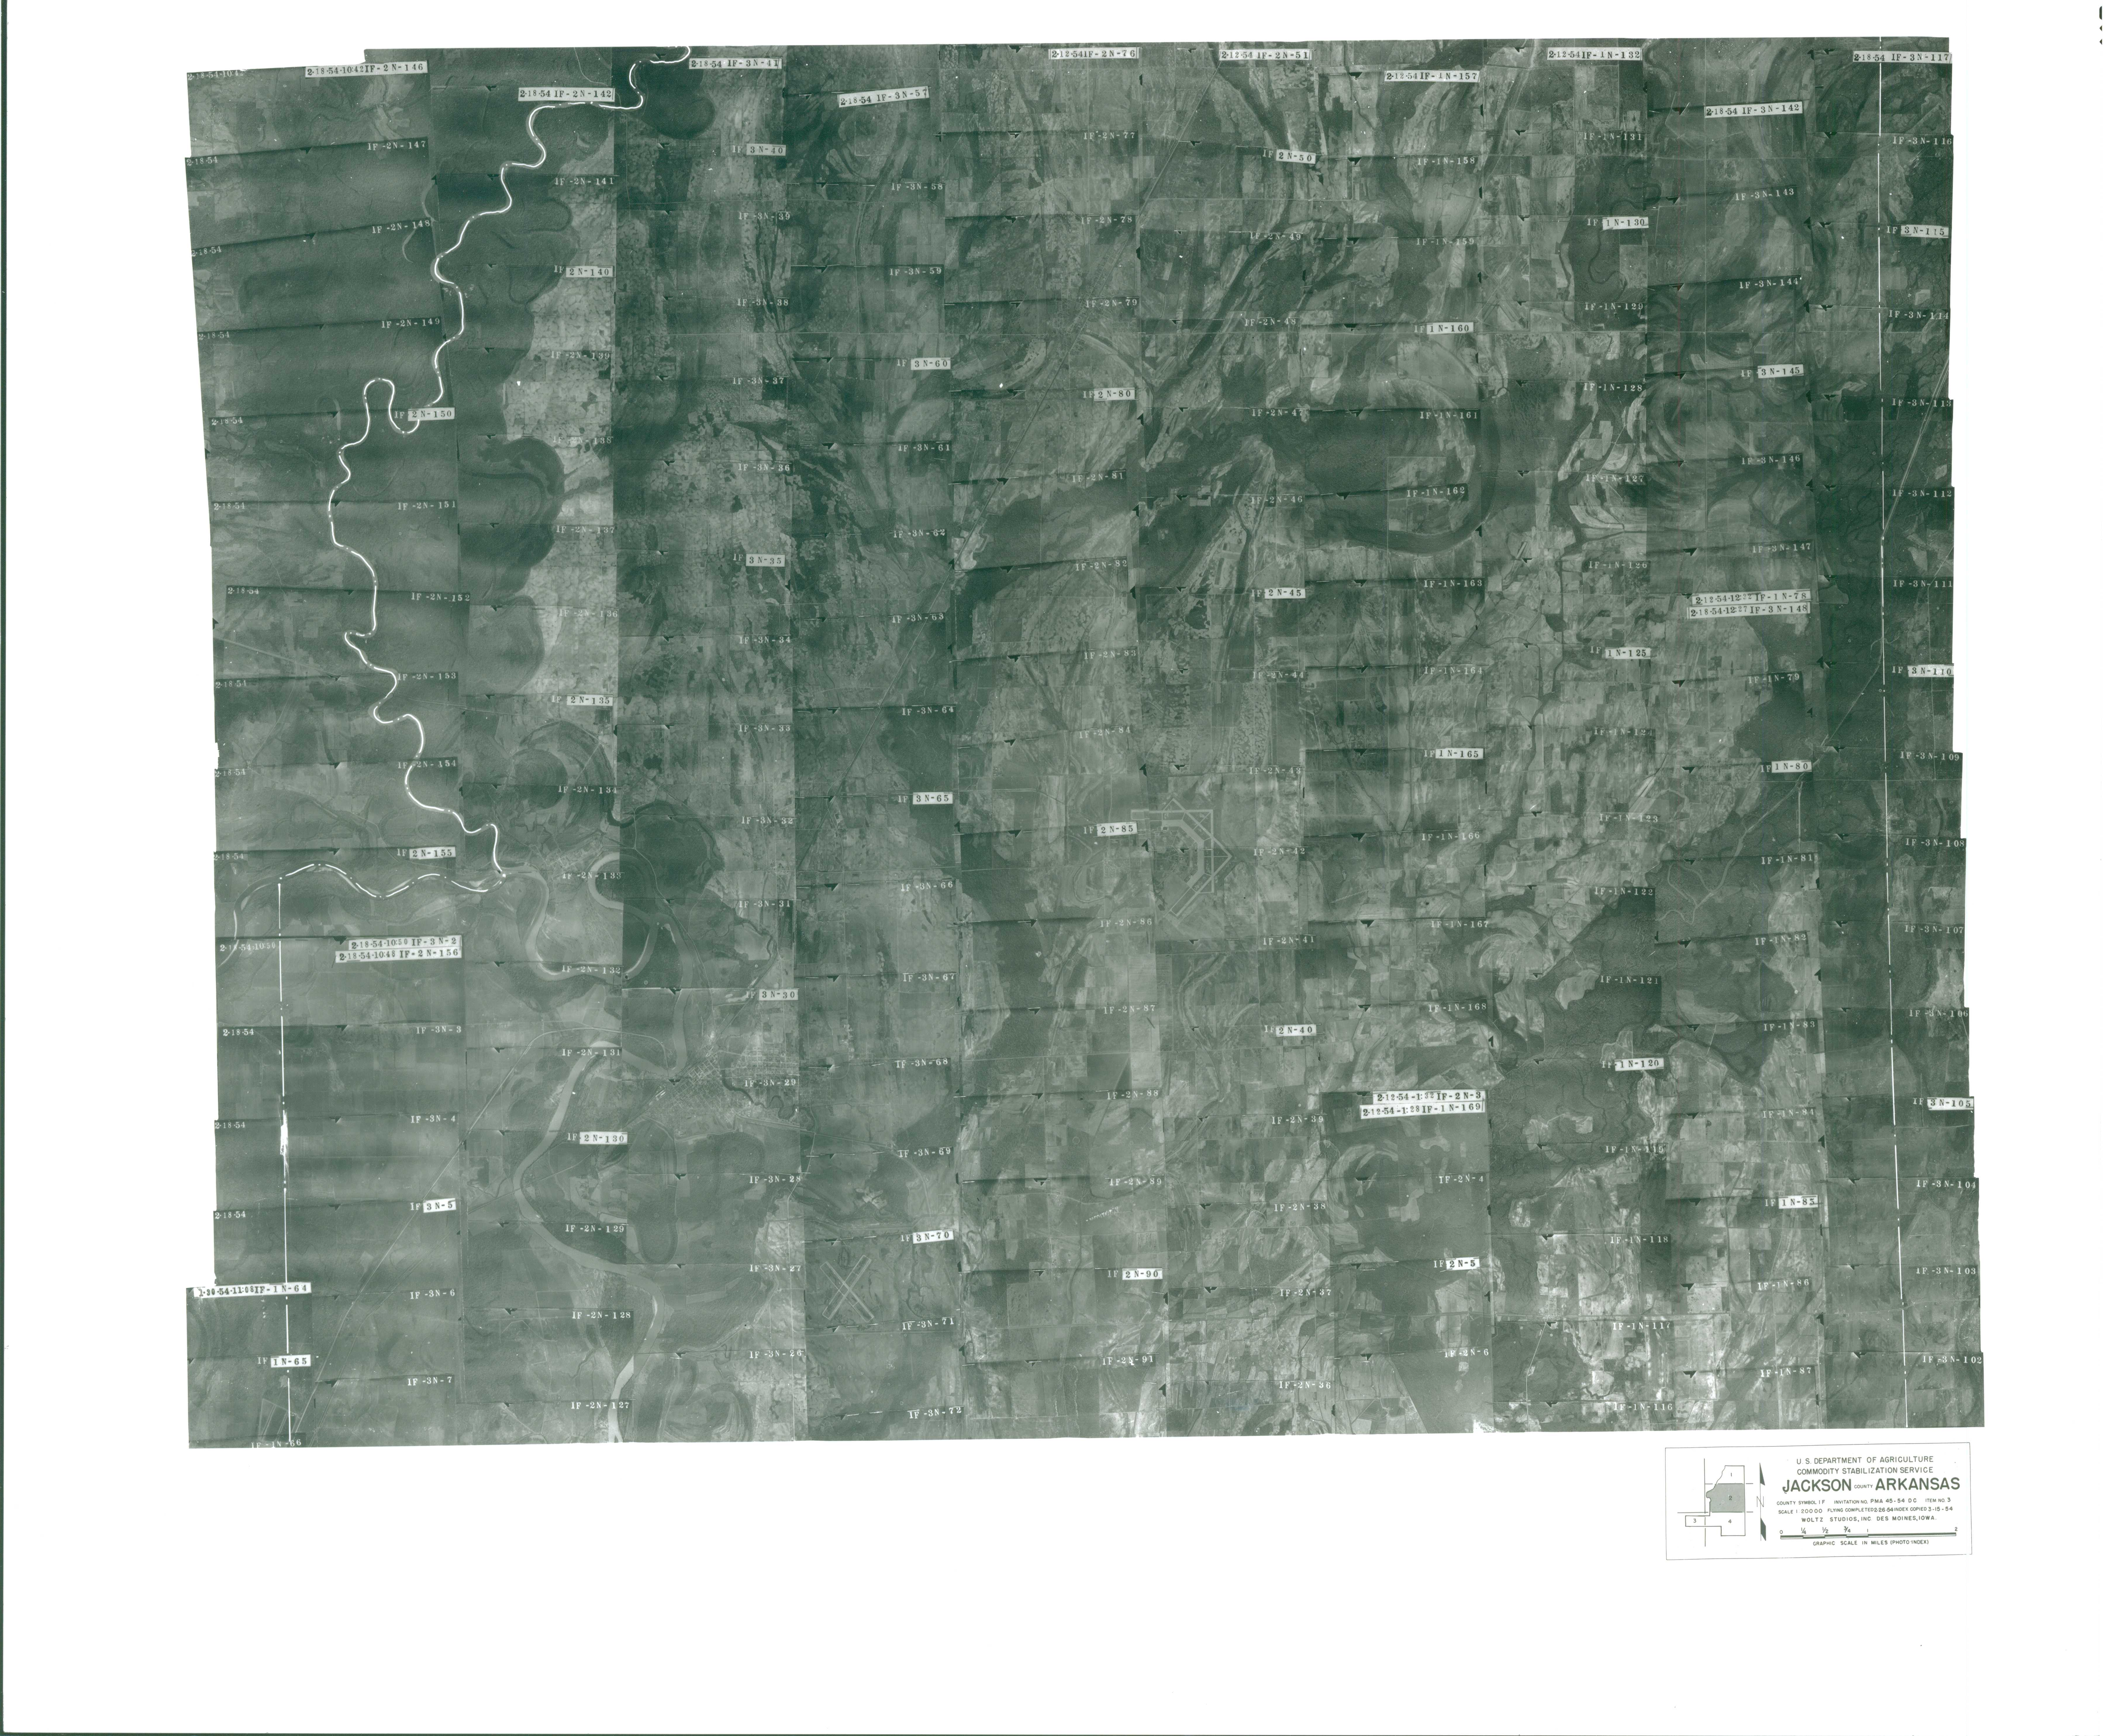 Index to Aerial Photography of Jackson County, Arkansas 2